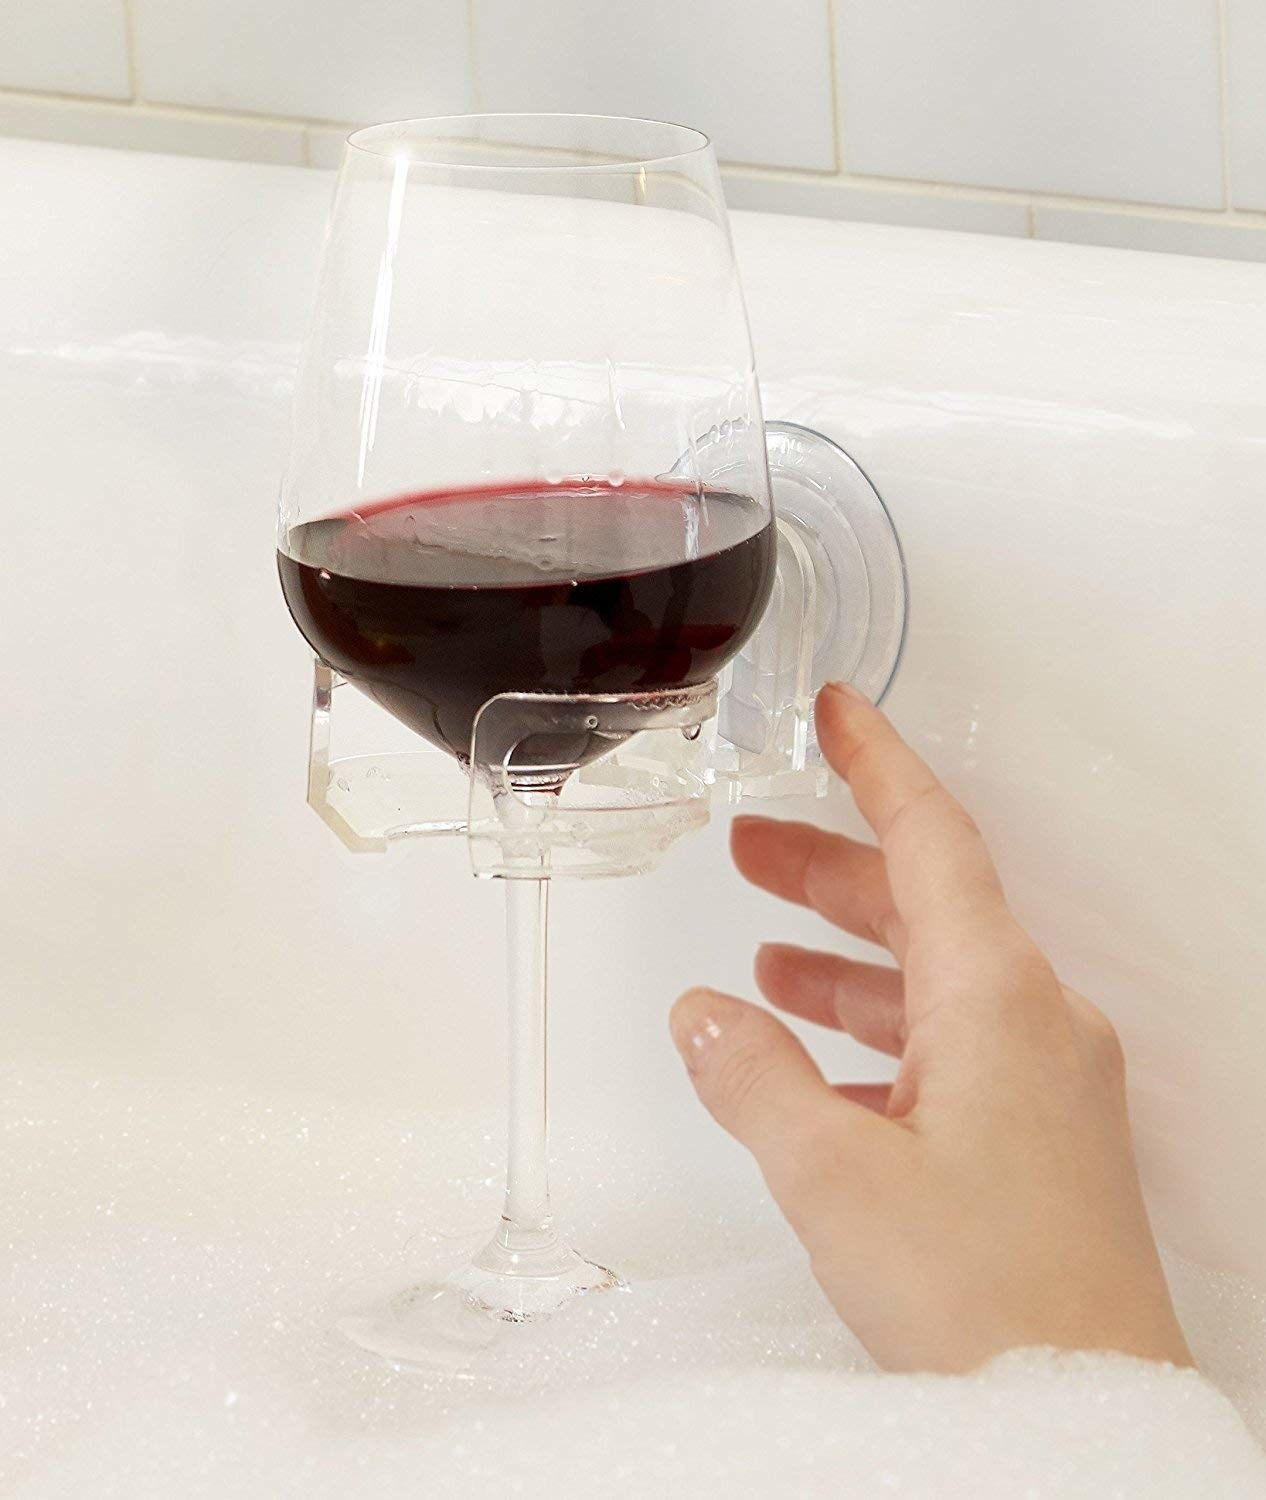 A transparent holder suctioned to the side of the tub with a stemmed wine glass in it